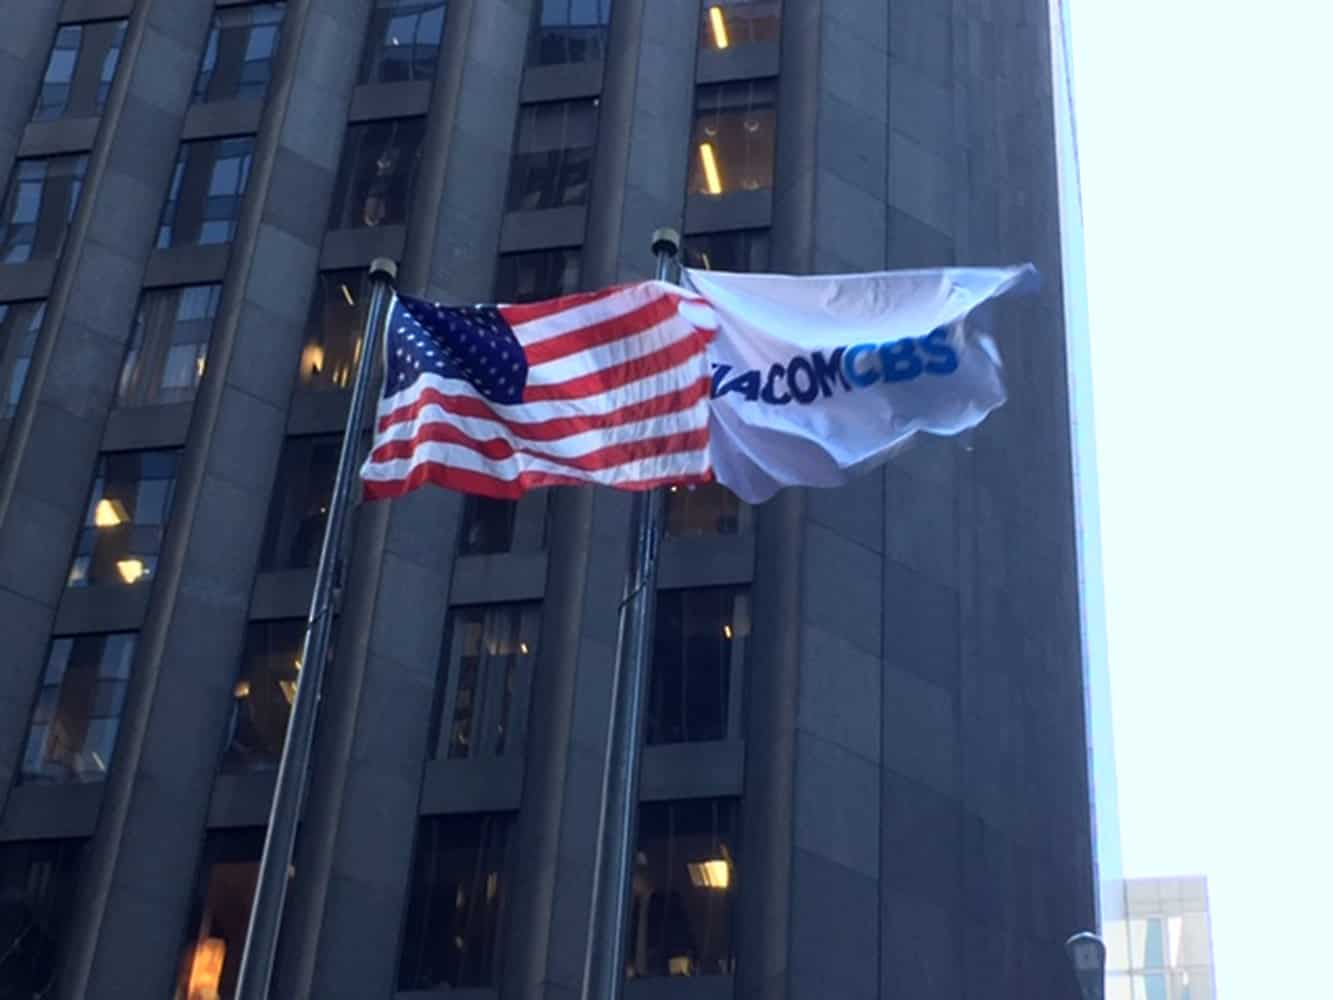 National Flag and Display produces a Custom Flag for ViacomCBS. The 2019 merger between CBS and Viacom was completed December 4, 2019.